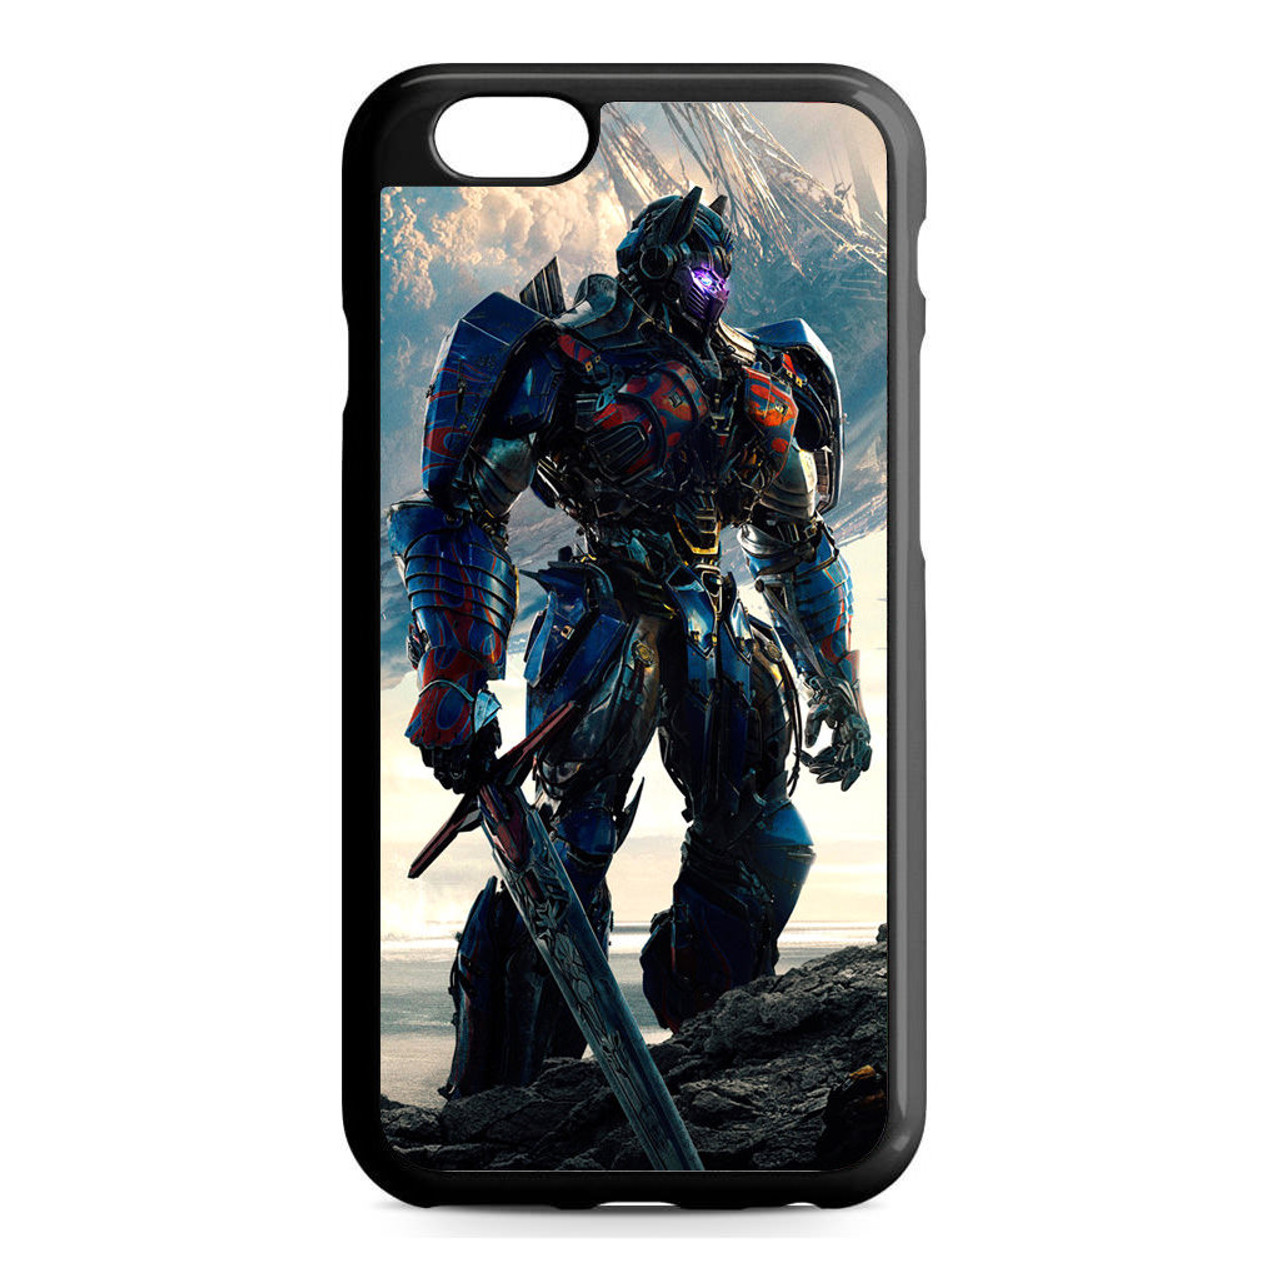 iphone 6 case prime